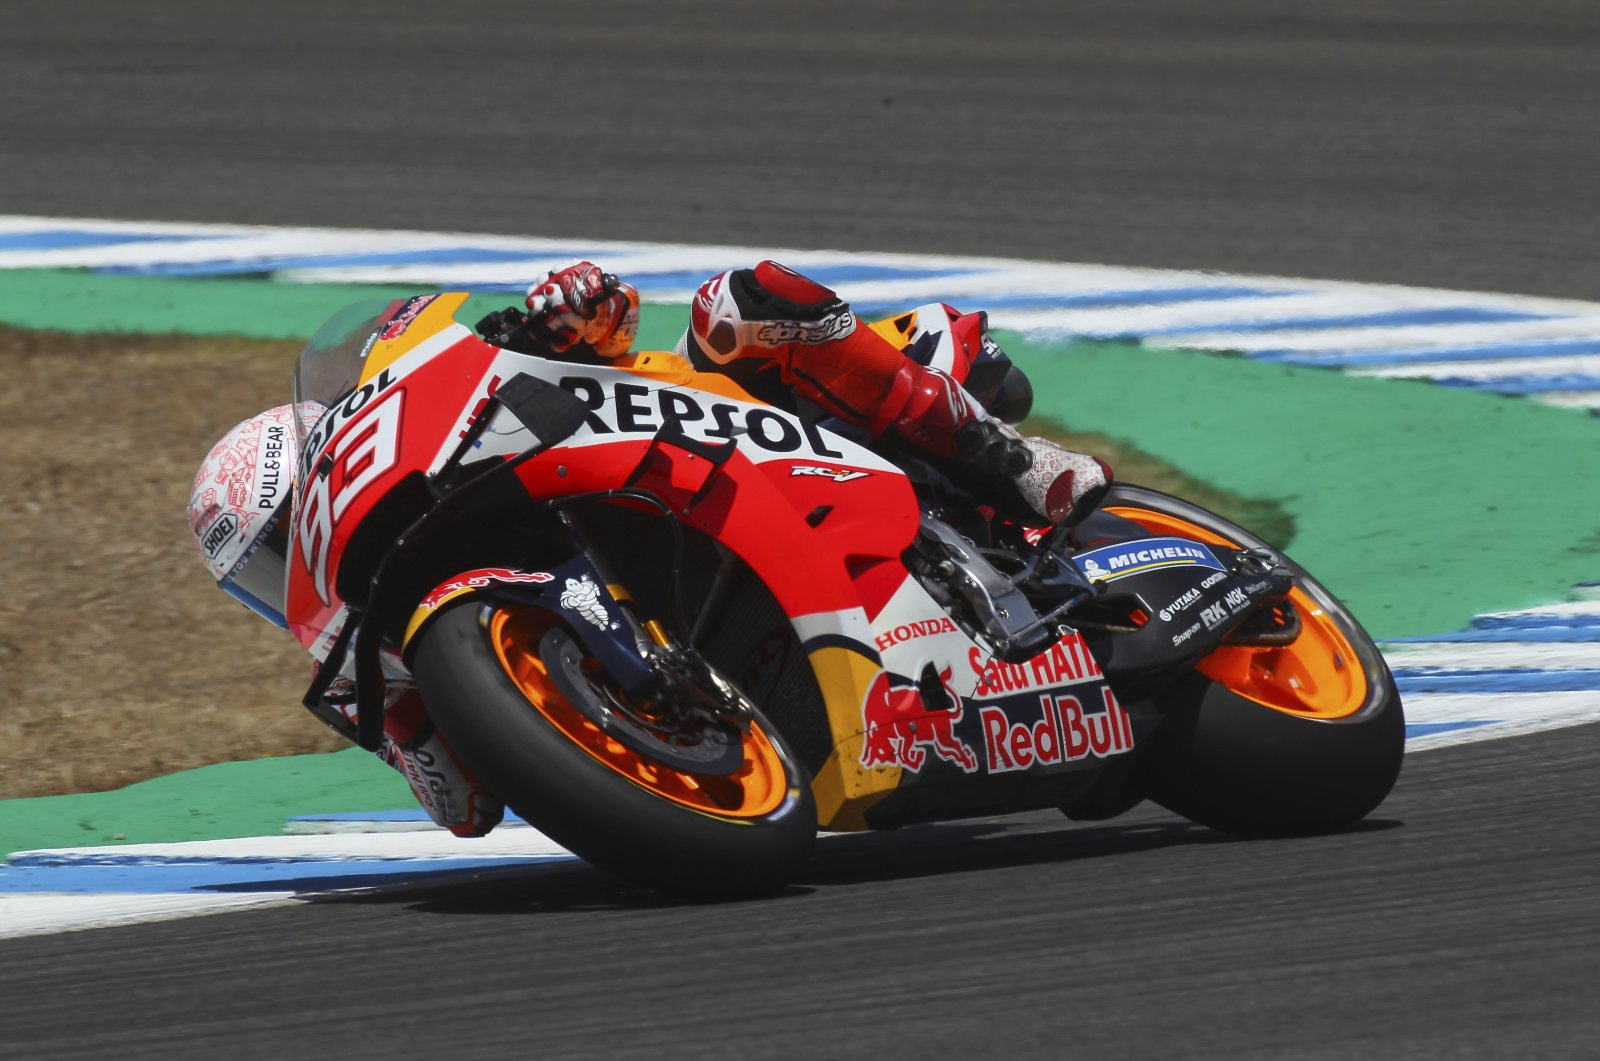 Marc Marquez steers his motorcycle during the Spanish Motorcycle Grand Prix in Jerez de la Frontera, July 19, 2020. (AP Photo)